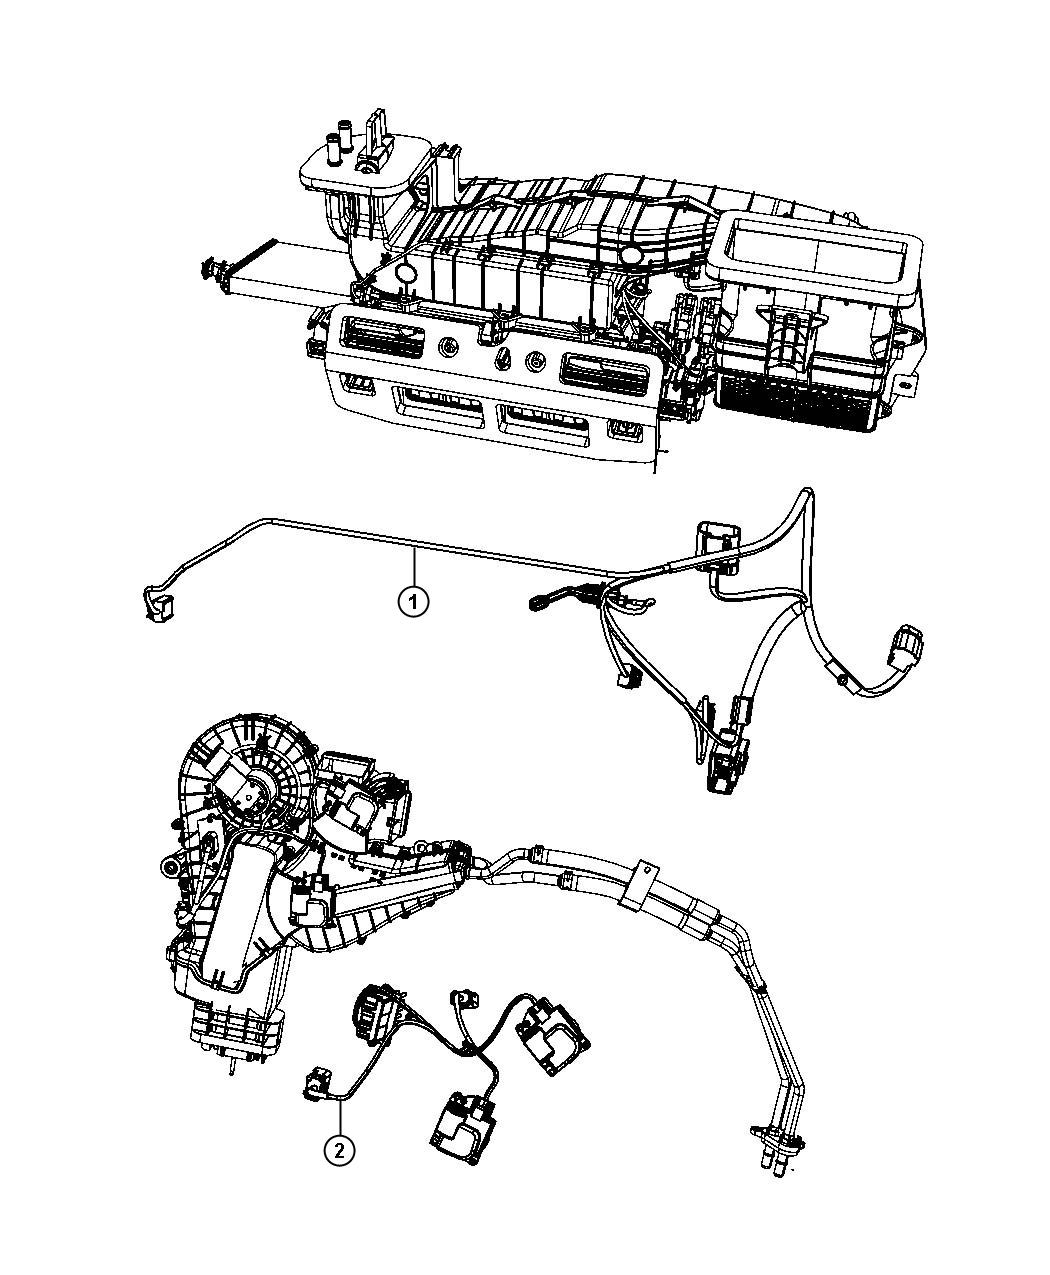 Dodge Grand Caravan Wiring Used For A C And Heater Rear